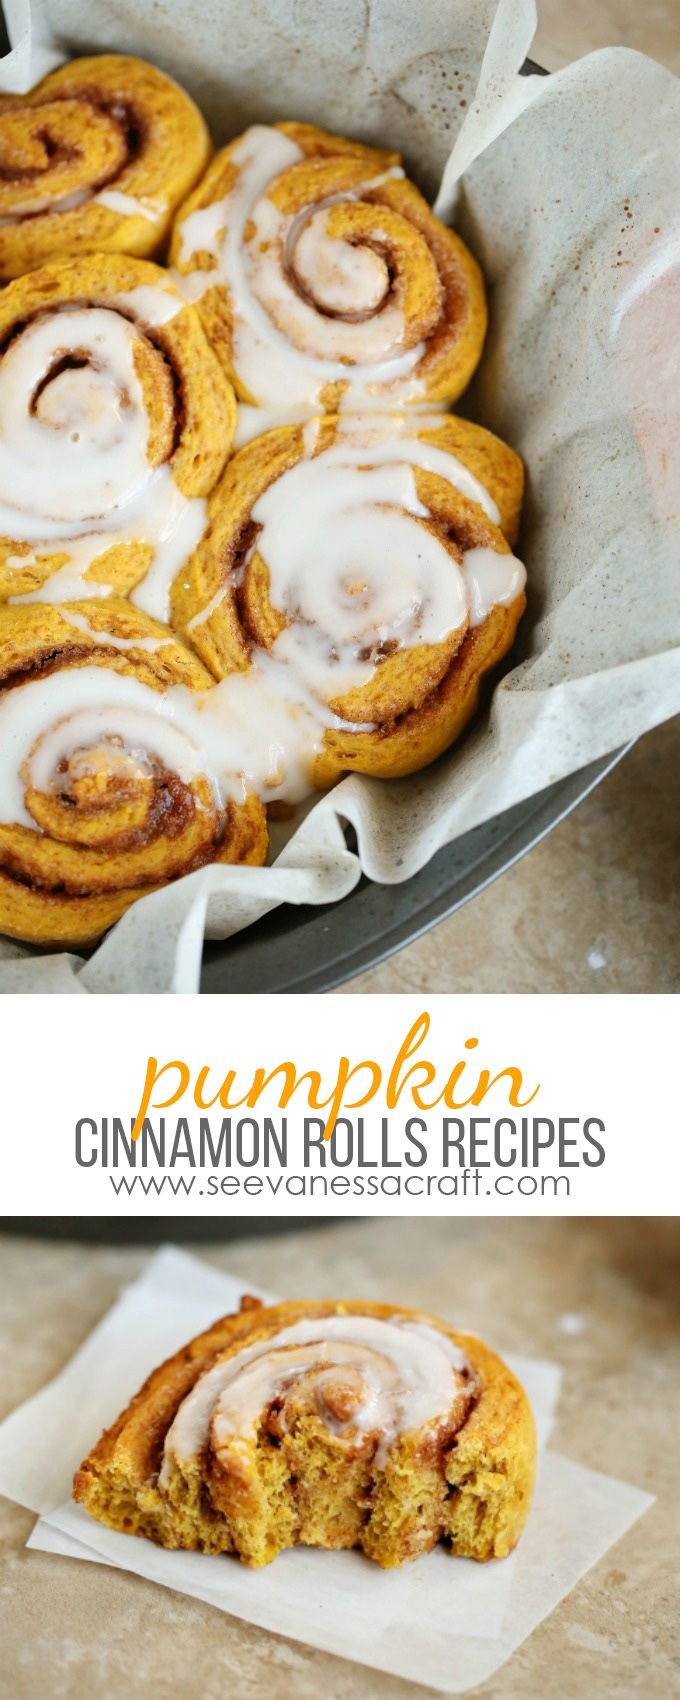 Homemade Pumpkin Cinnamon Rolls - perfect for a cold Fall day or Thanksgiving breakfast!